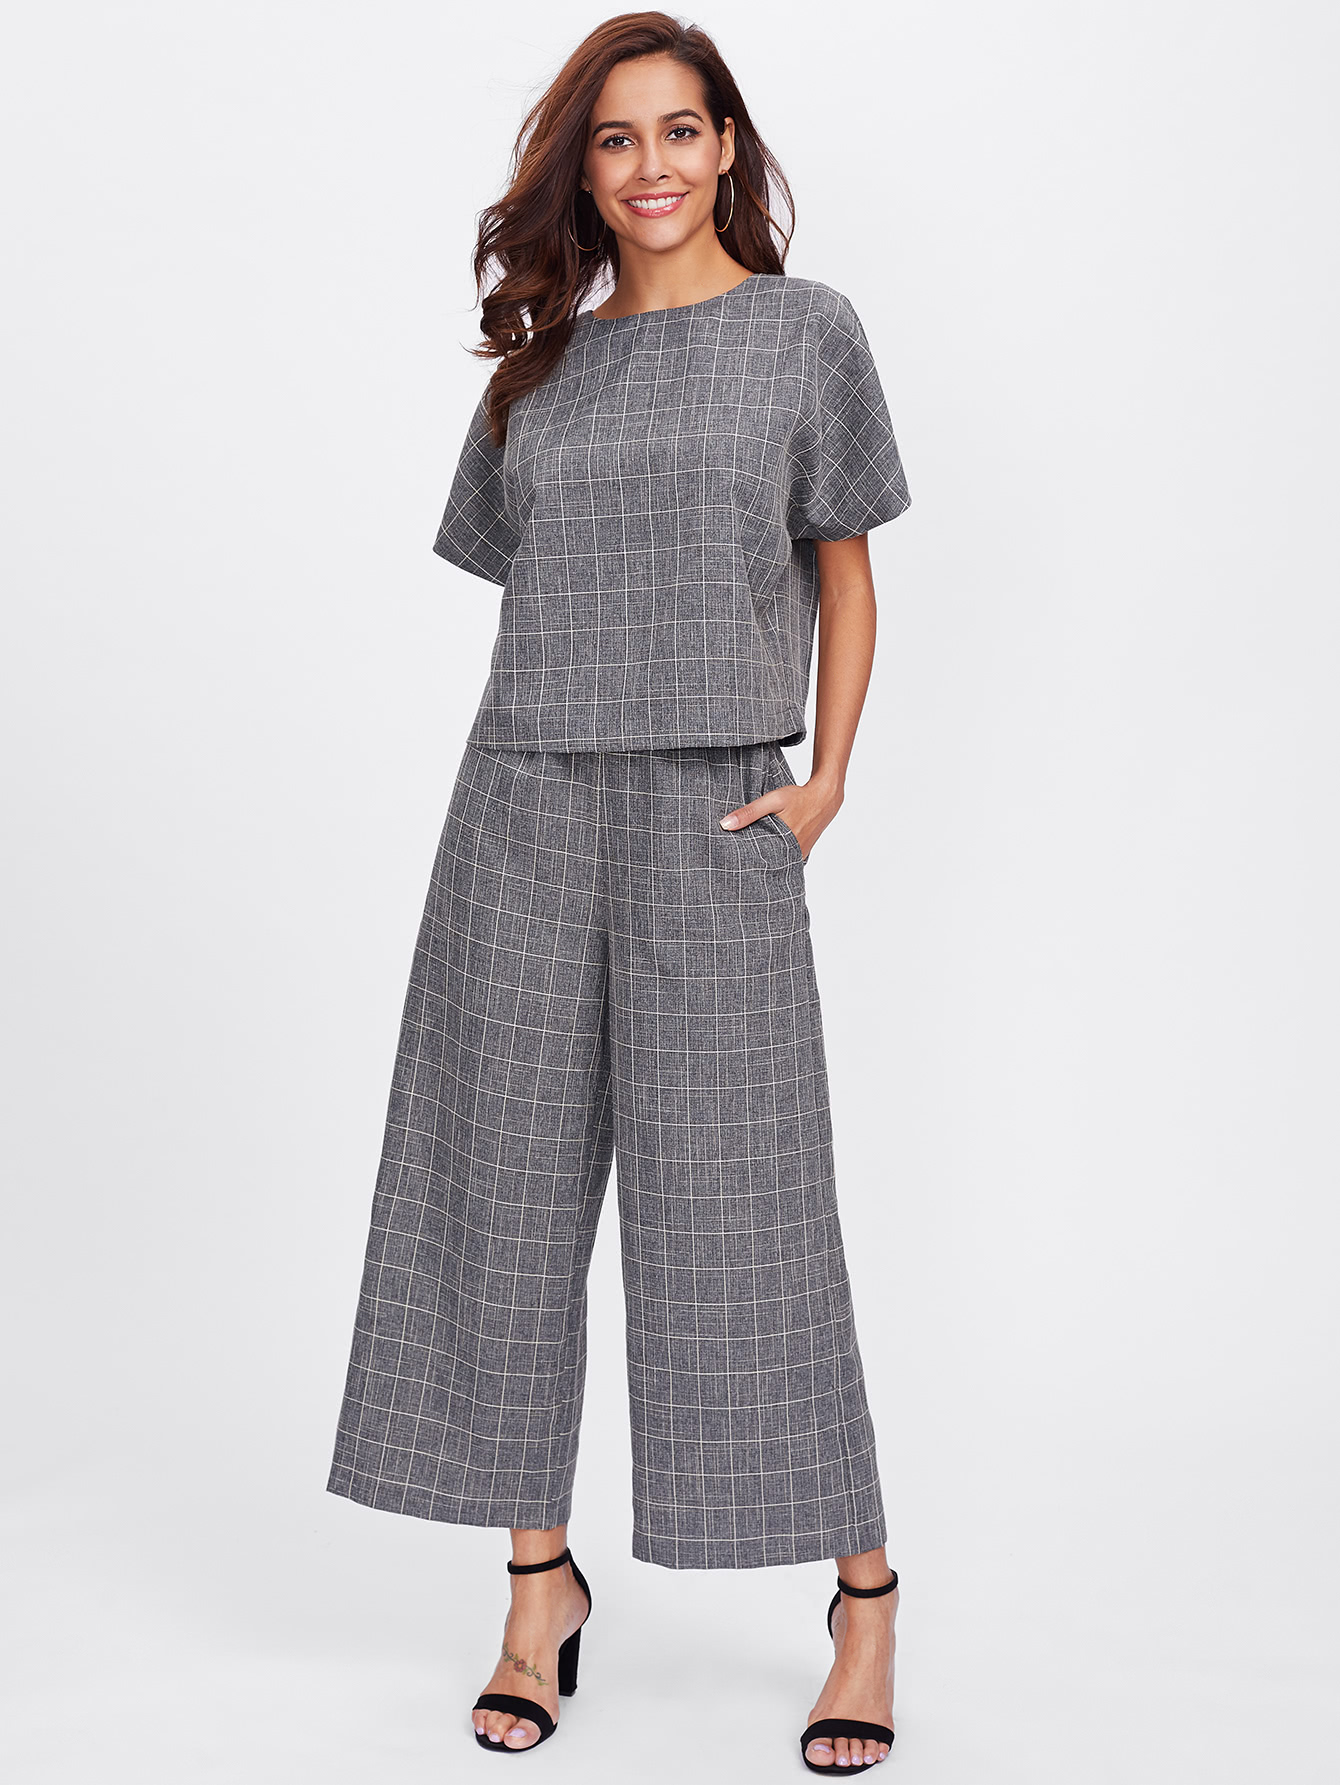 Buttoned Keyhole Grid Top & Palazzo Pants Co-Ord grid carrot pants